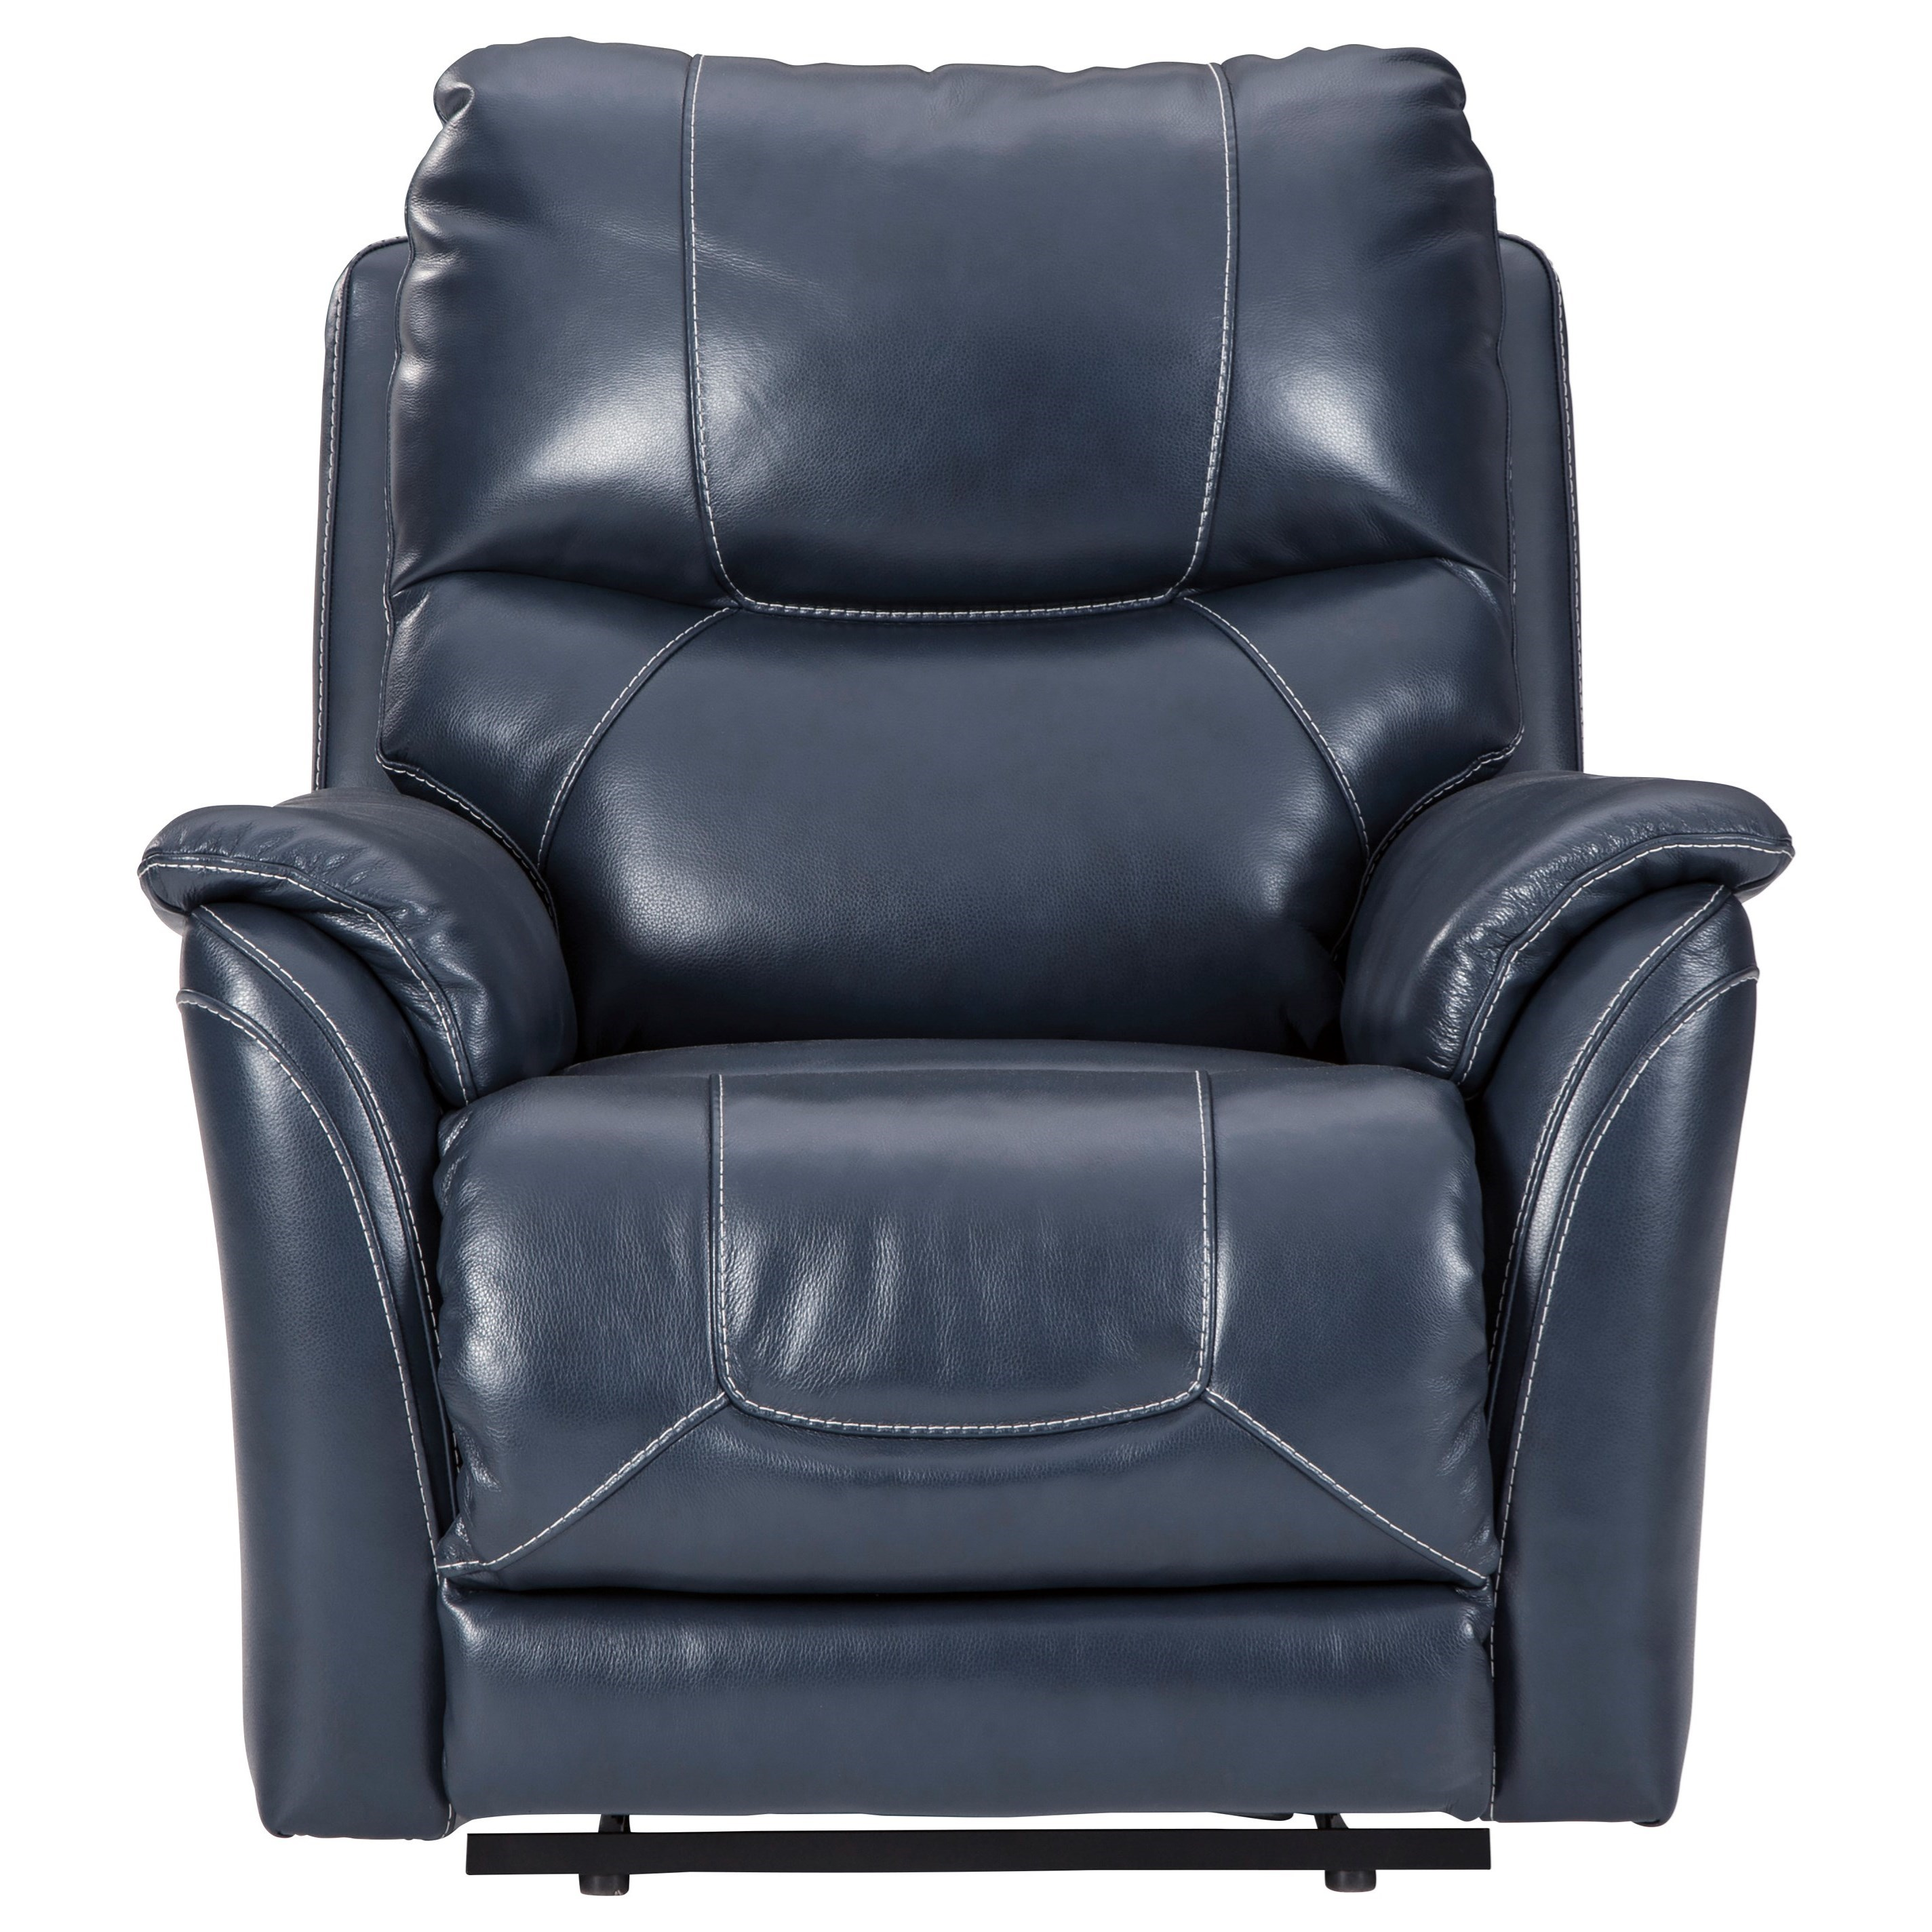 Dellington Power Recliner with Adjustable Headrest by Ashley Signature Design at Dunk & Bright Furniture